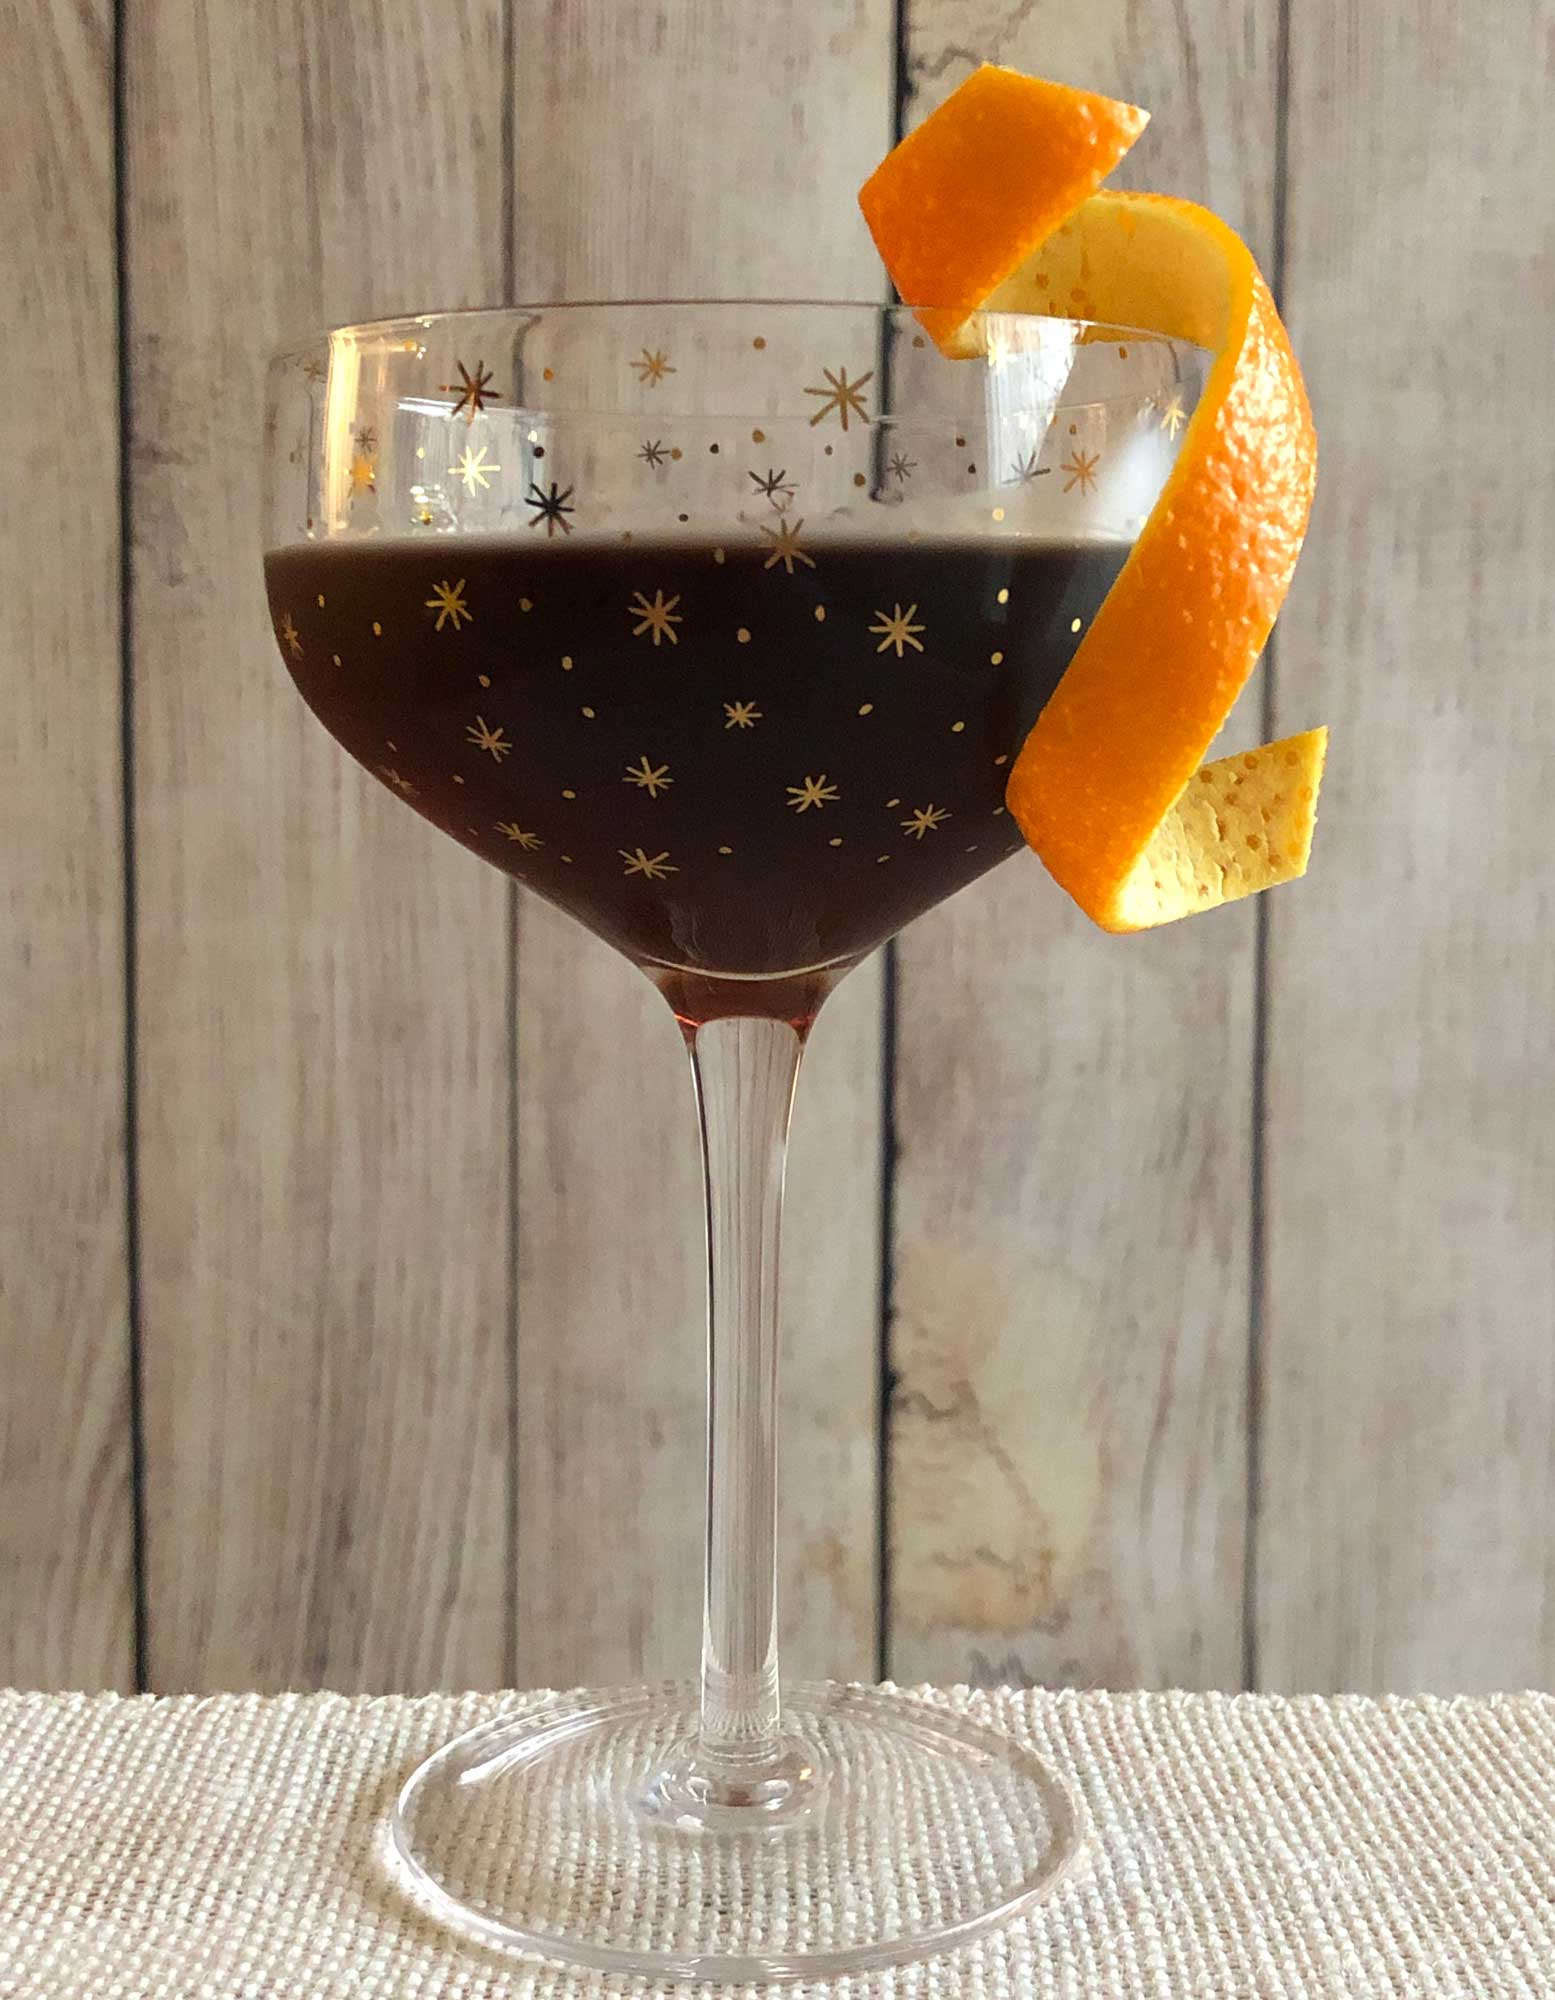 An example of the El Poco Loco, the mixed drink (cocktail) featuring Hayman's Old Tom Gin, Dolin Rouge Vermouth de Chambéry, and Nux Alpina Walnut Liqueur; photo by Lee Edwards